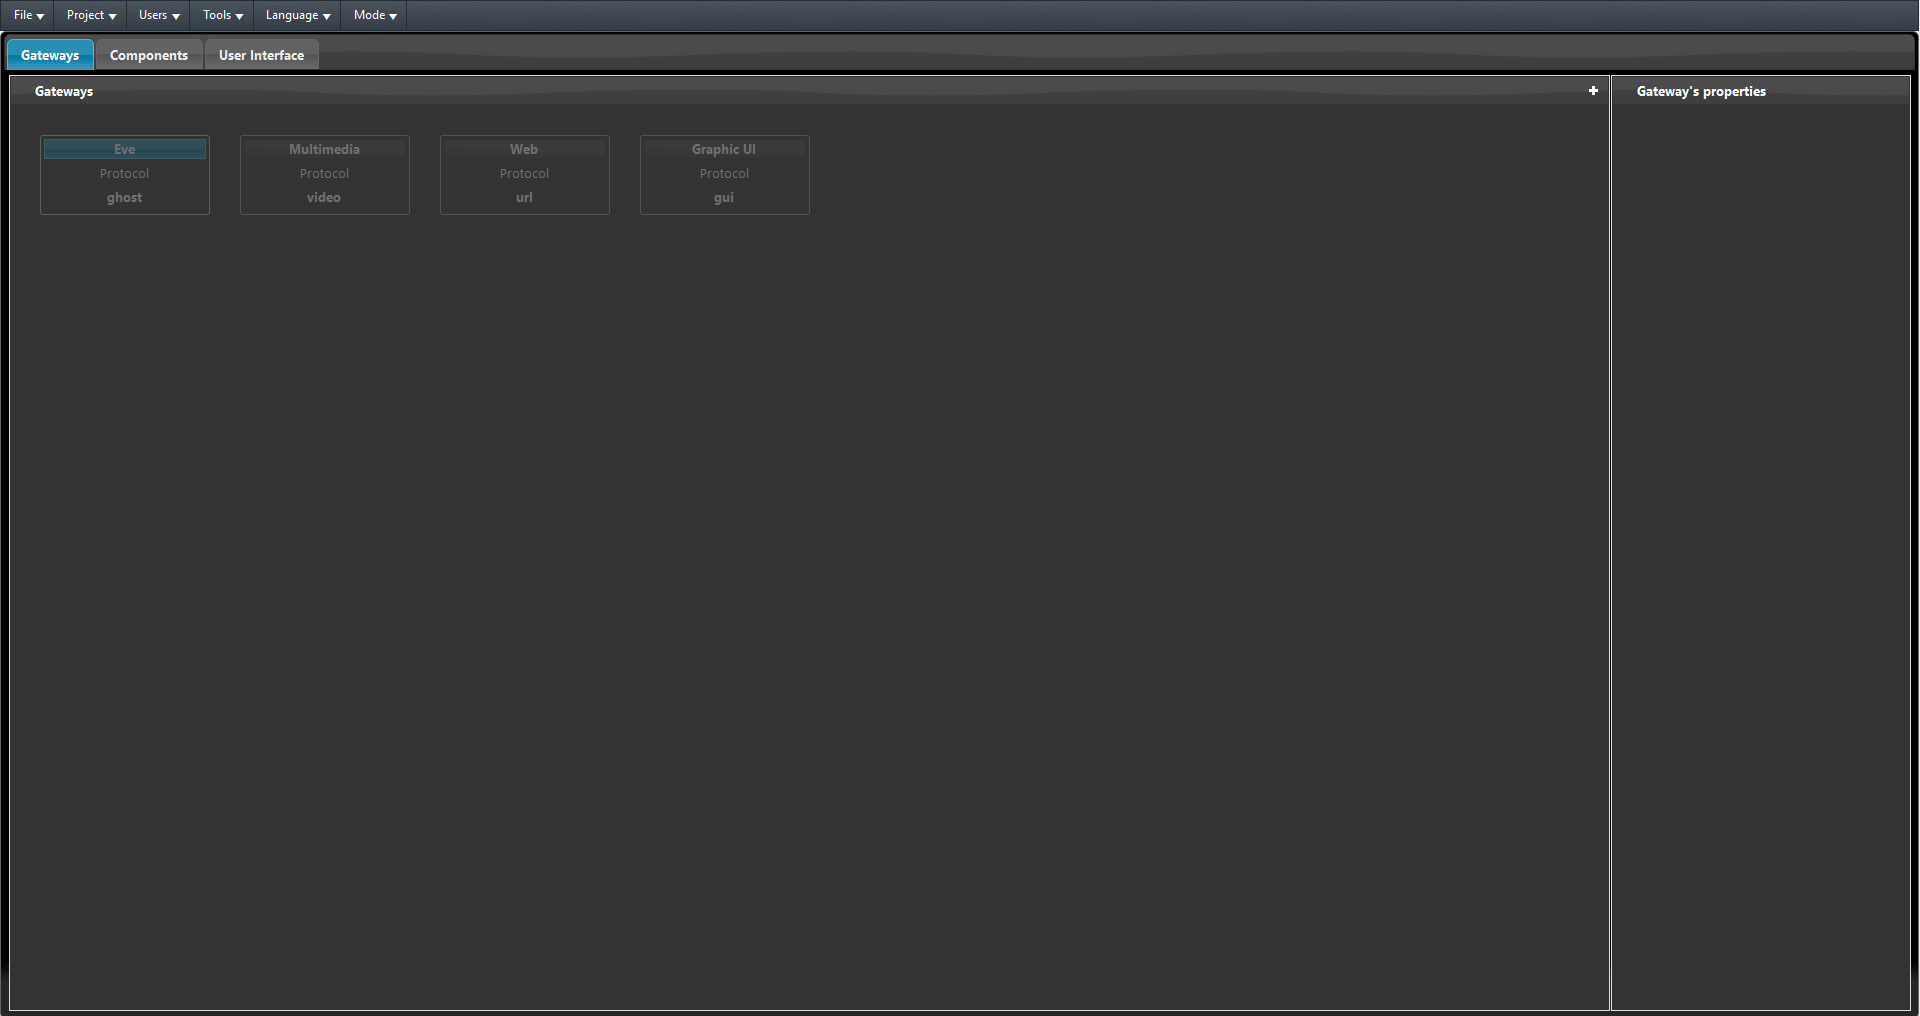 How the gateway tab looks like inside the Home automation configuration software EVE Manager Pro